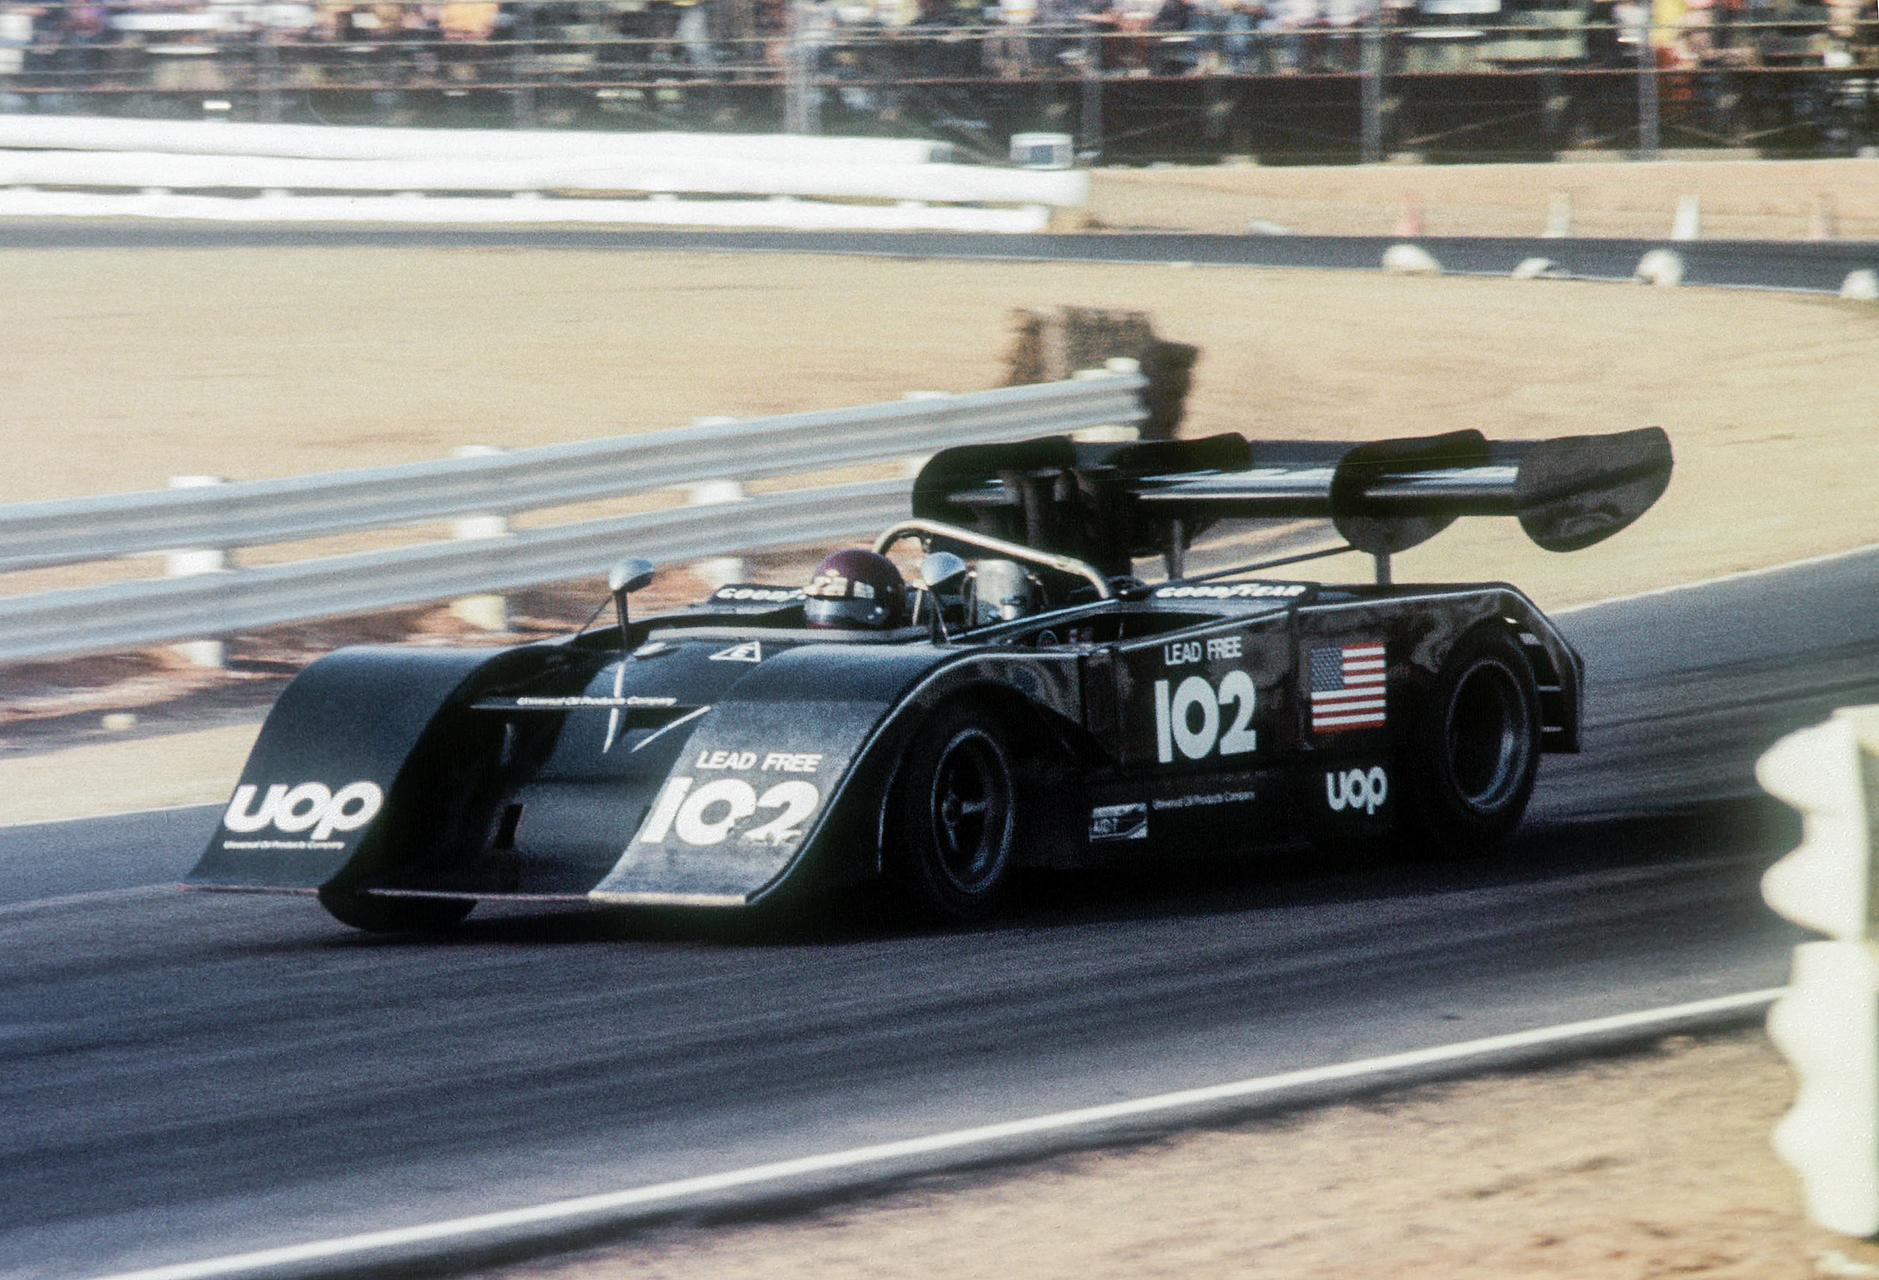 The unique, Chevrolet-powered Shadow Mk lll driven by Bobby Allison. The Universal Oil Products sponsored car placed fourth on the day despite DNFing on the last lap with a broken input shaft. Teammate Jackie Oliver in the number 101 Shadow broke a piston before the race and did not start. In 1974 Oliver won the last Can Am championship in the turbocharged 8 liter Shadow before the team moved on to Formula One and Can Am collapsed.Shadow team principle Don Nichols was a colorful and somewhat mysterious figure who was one of the last successful American F1 privateers. They cars were designed by Brit Peter Bryant.